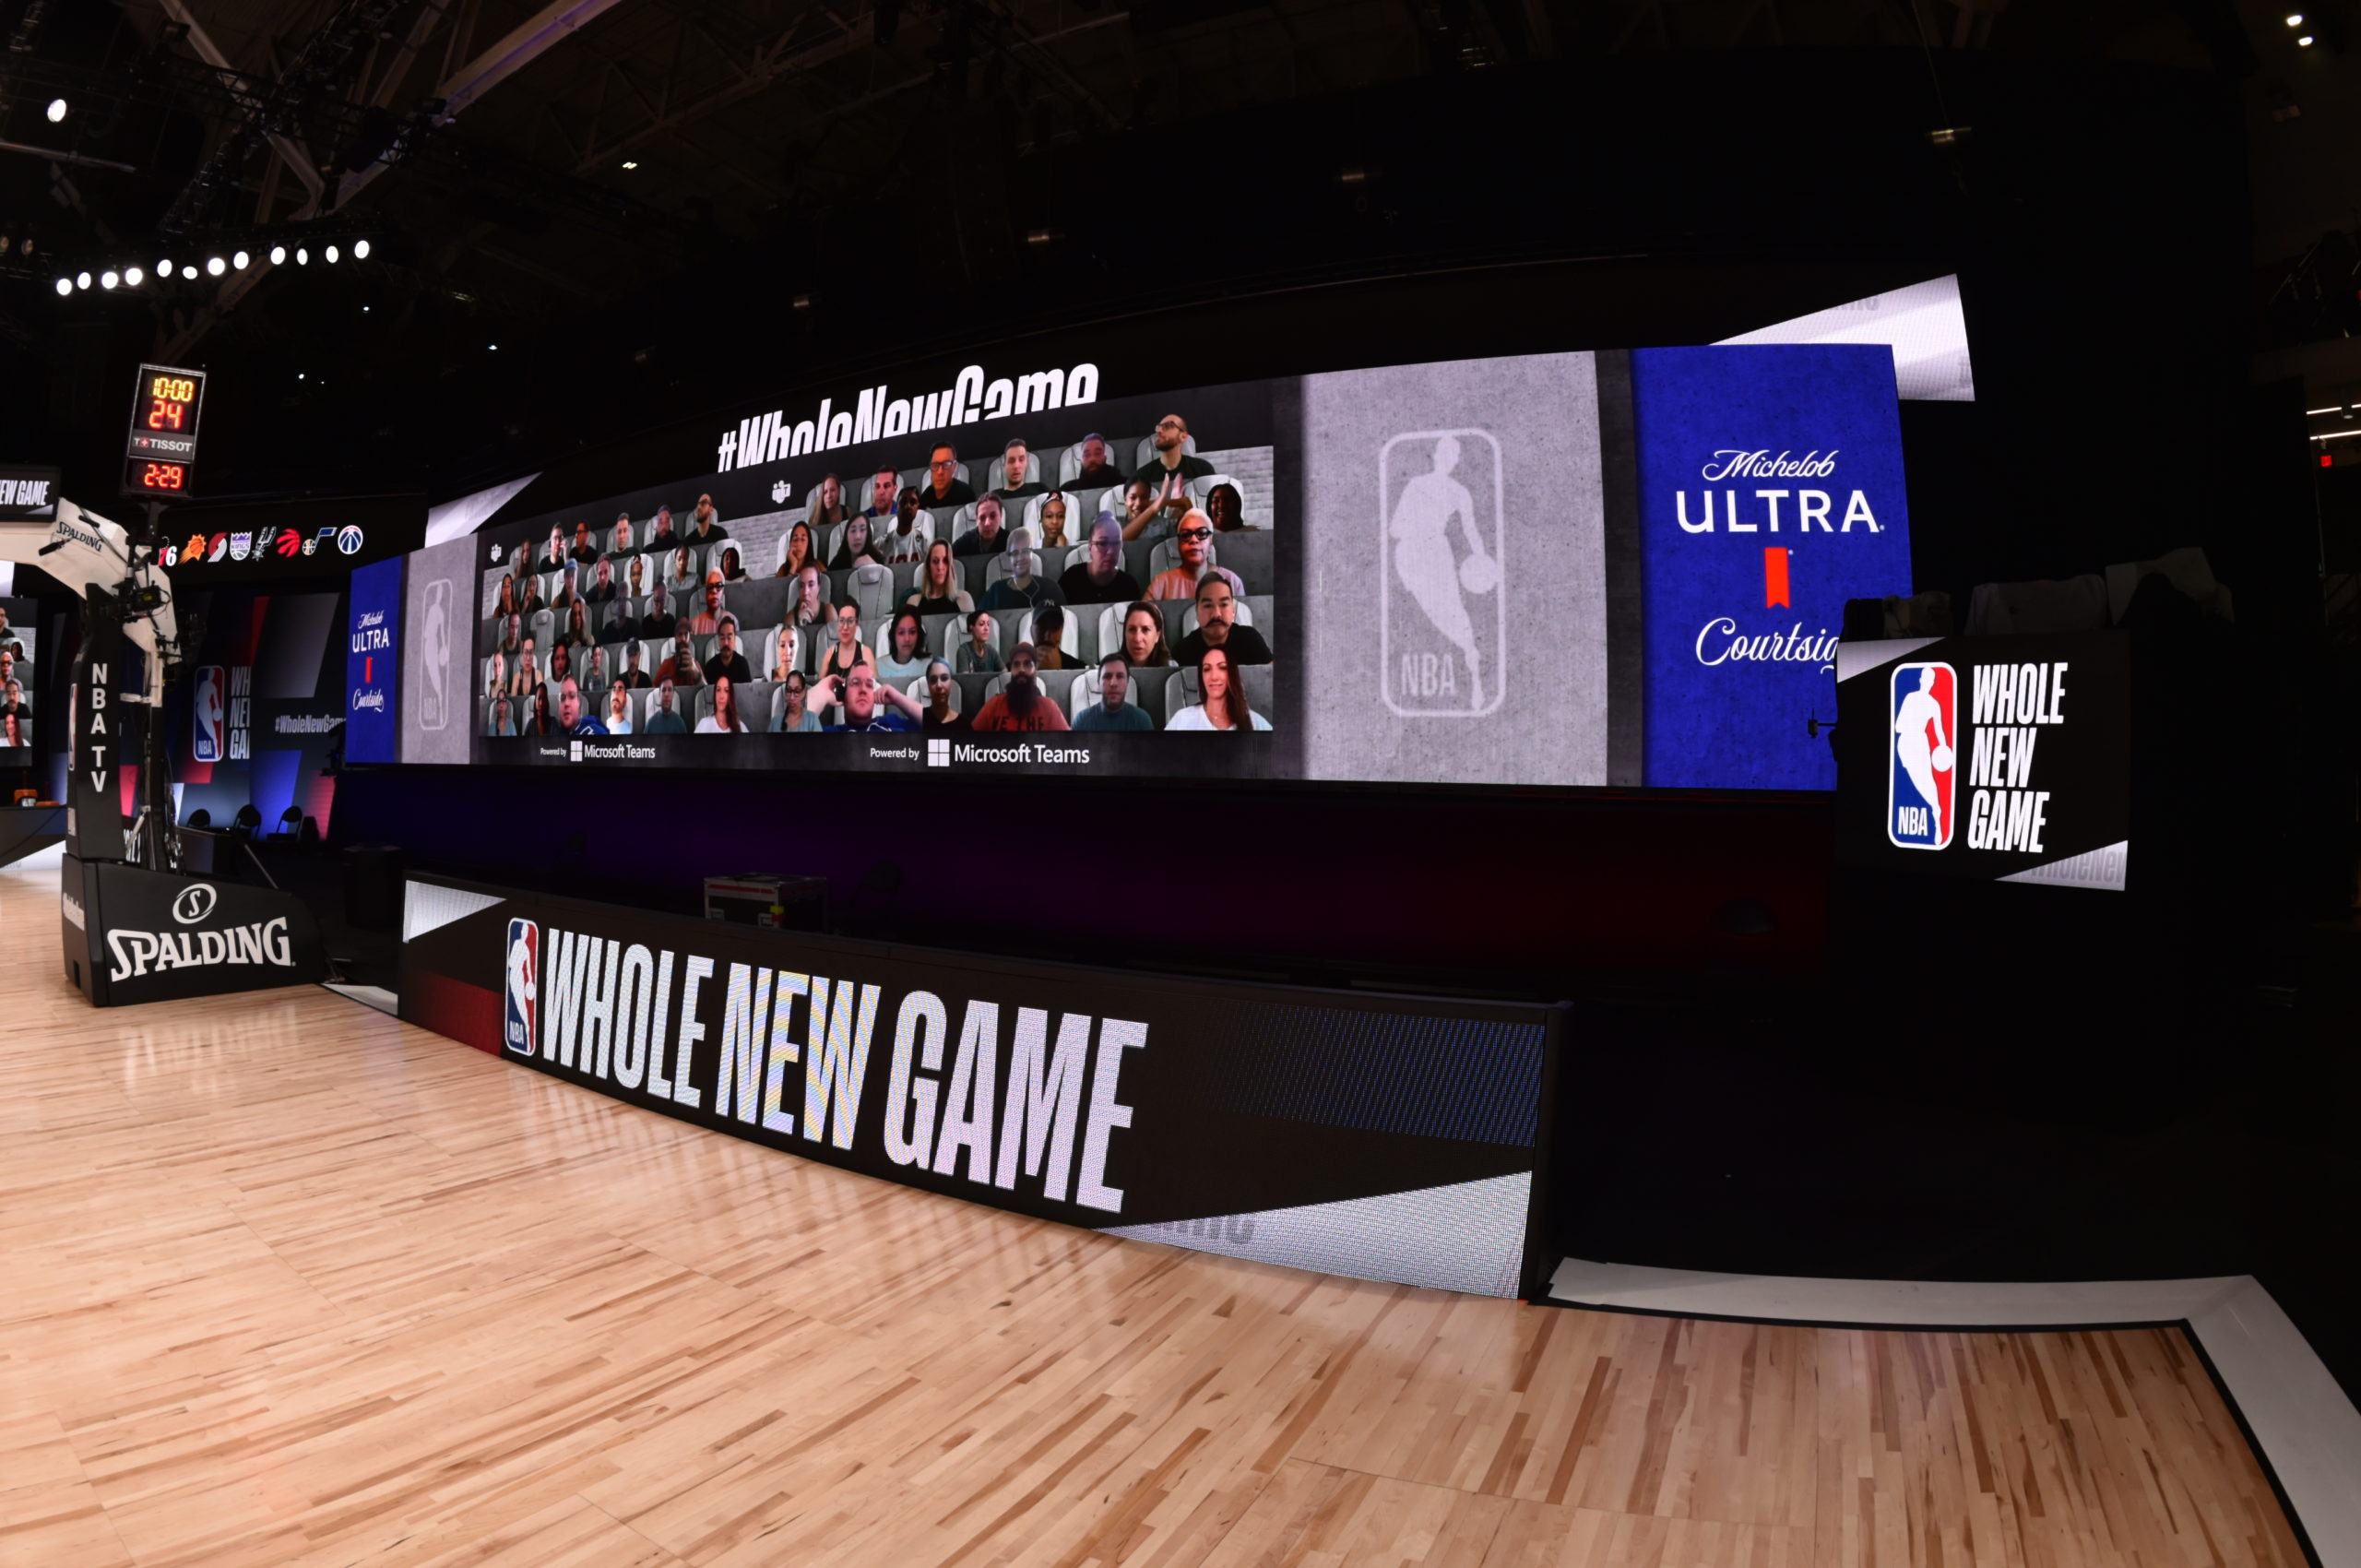 Microsoft and NBA will create 'virtual fans' by using AI